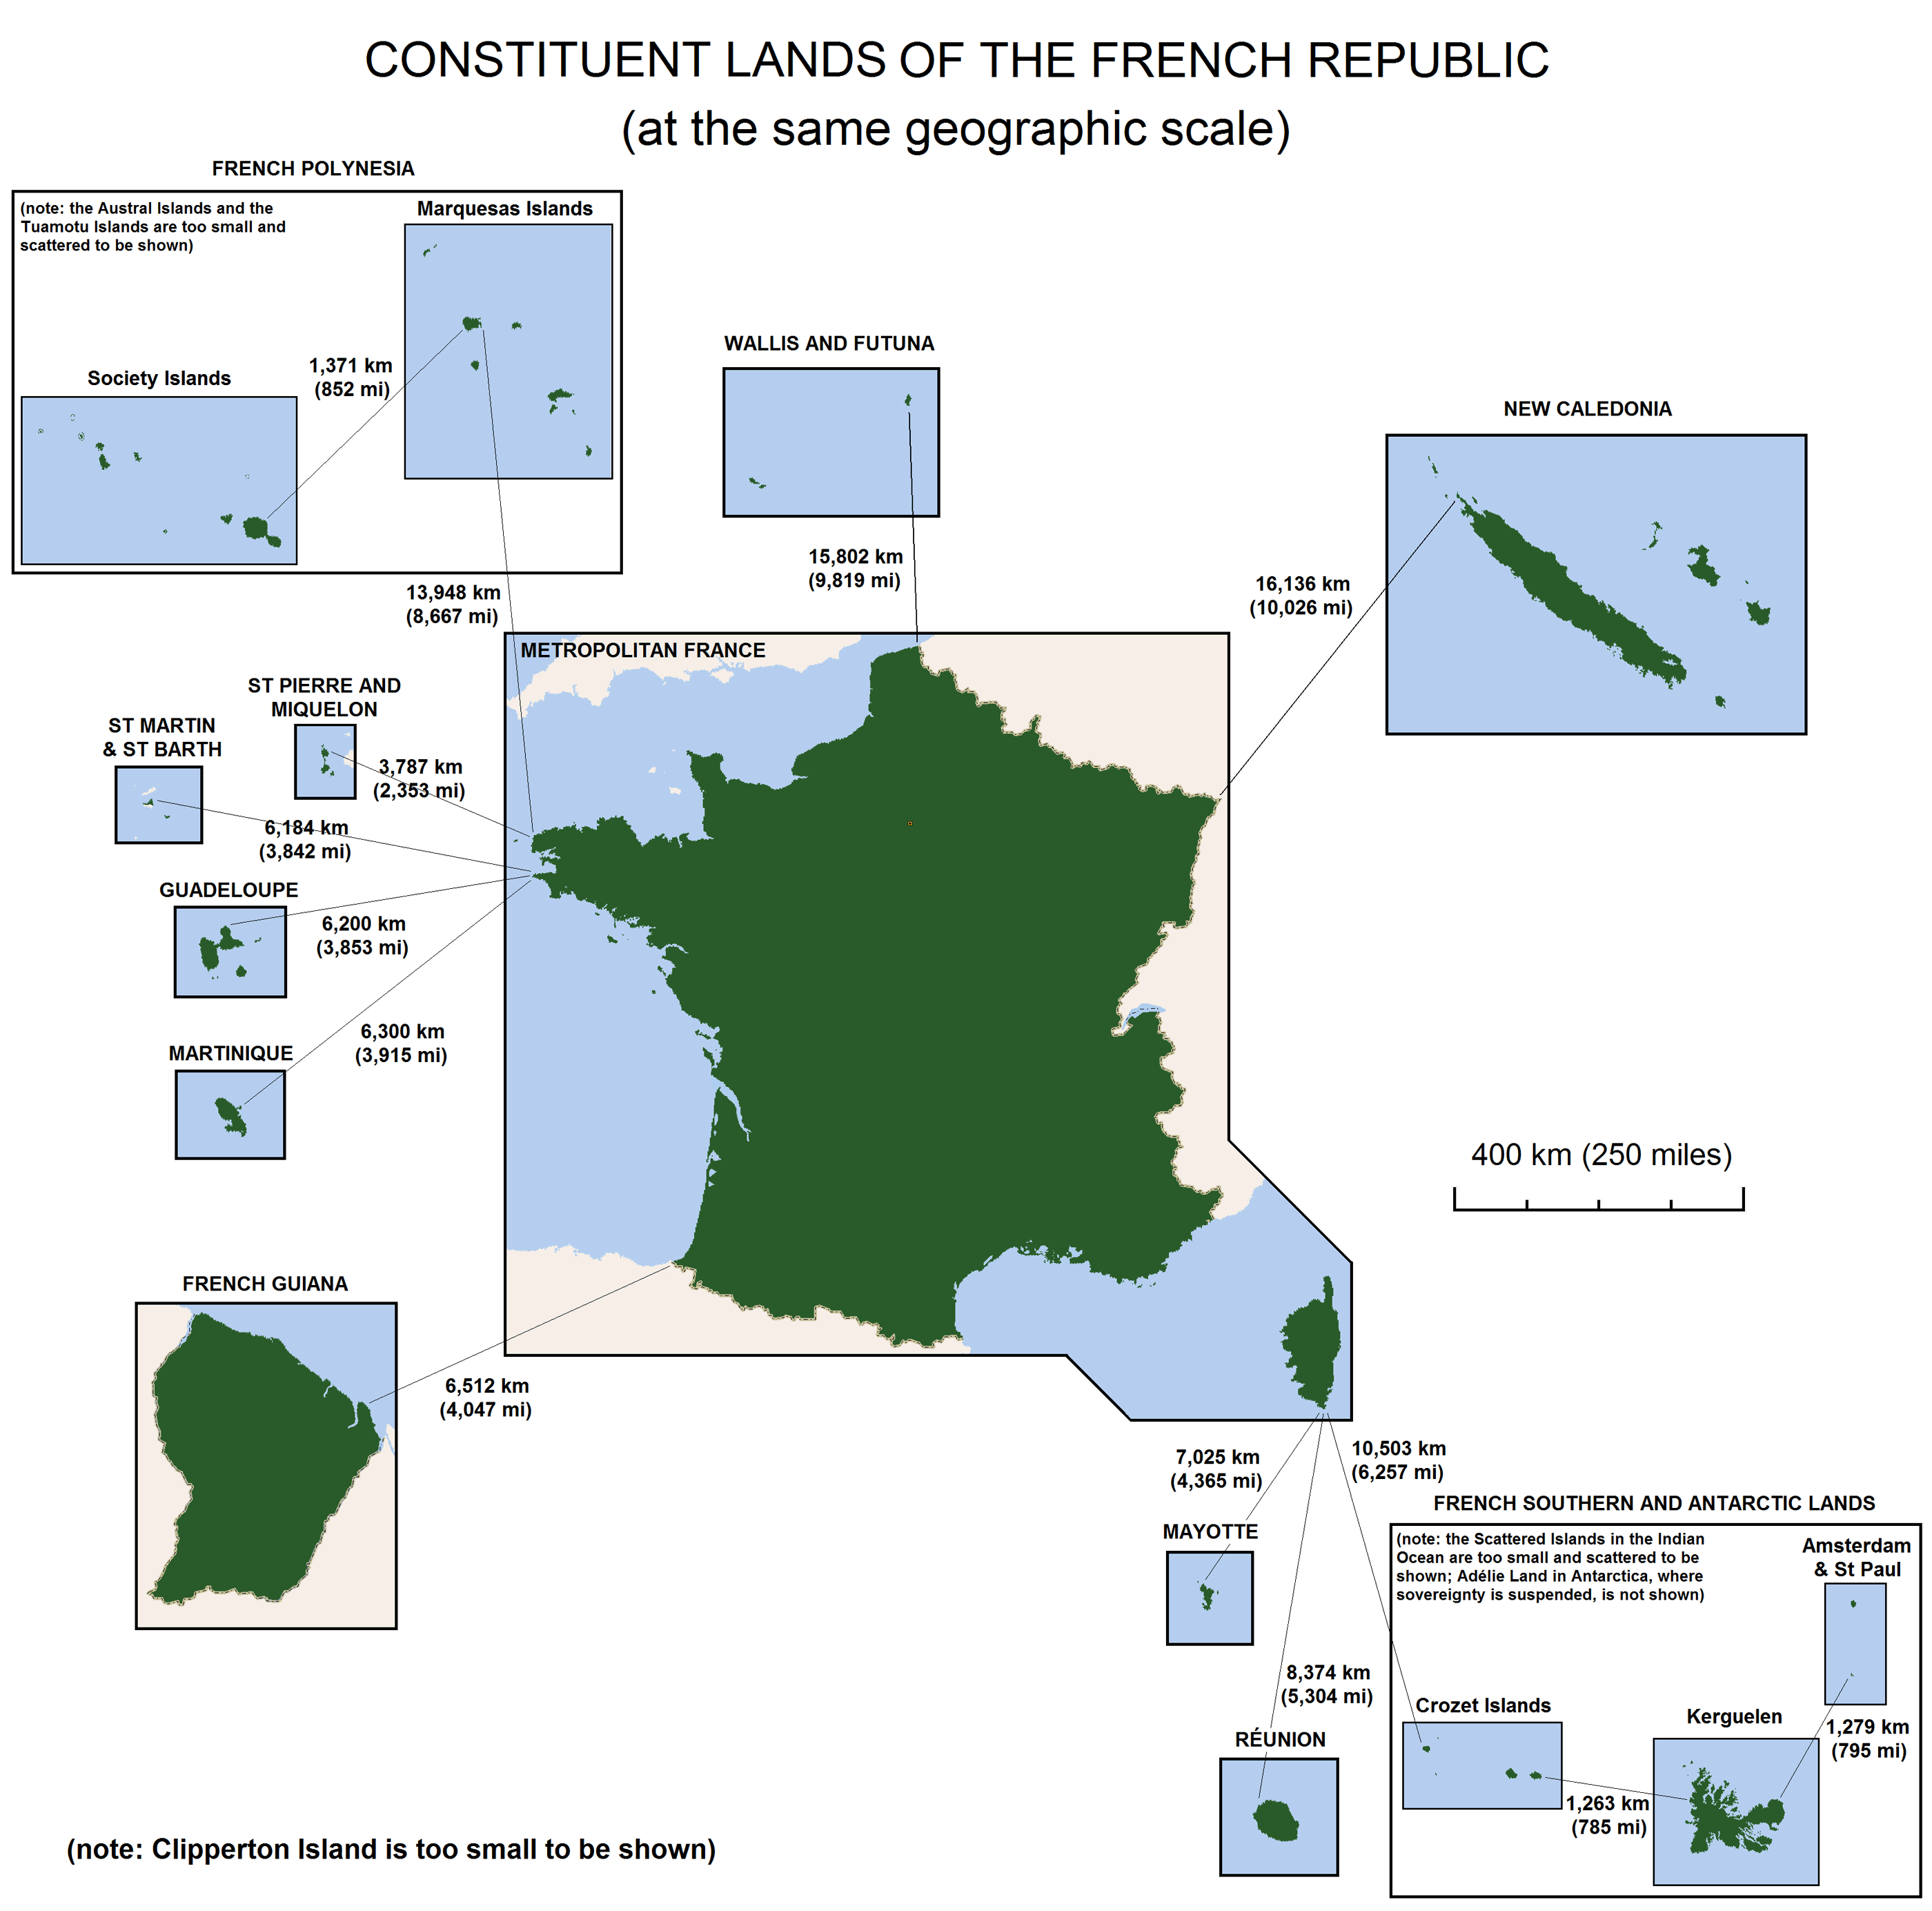 Constituent Lands of French Republic